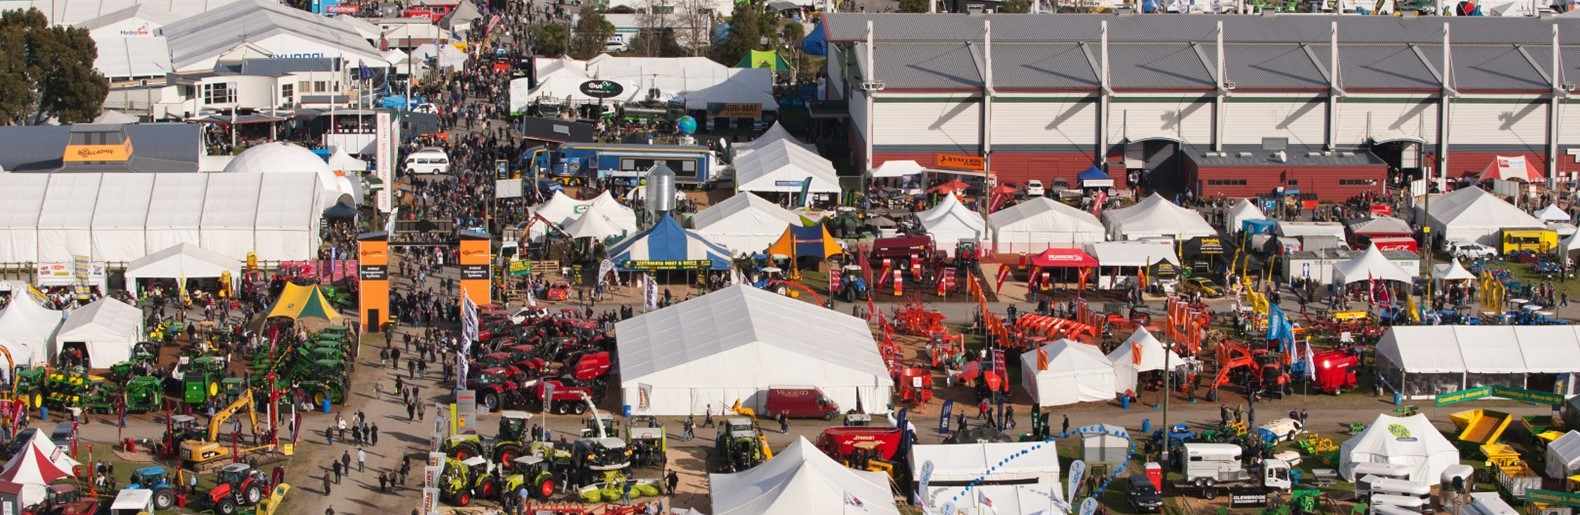 National Agricultural Fieldays